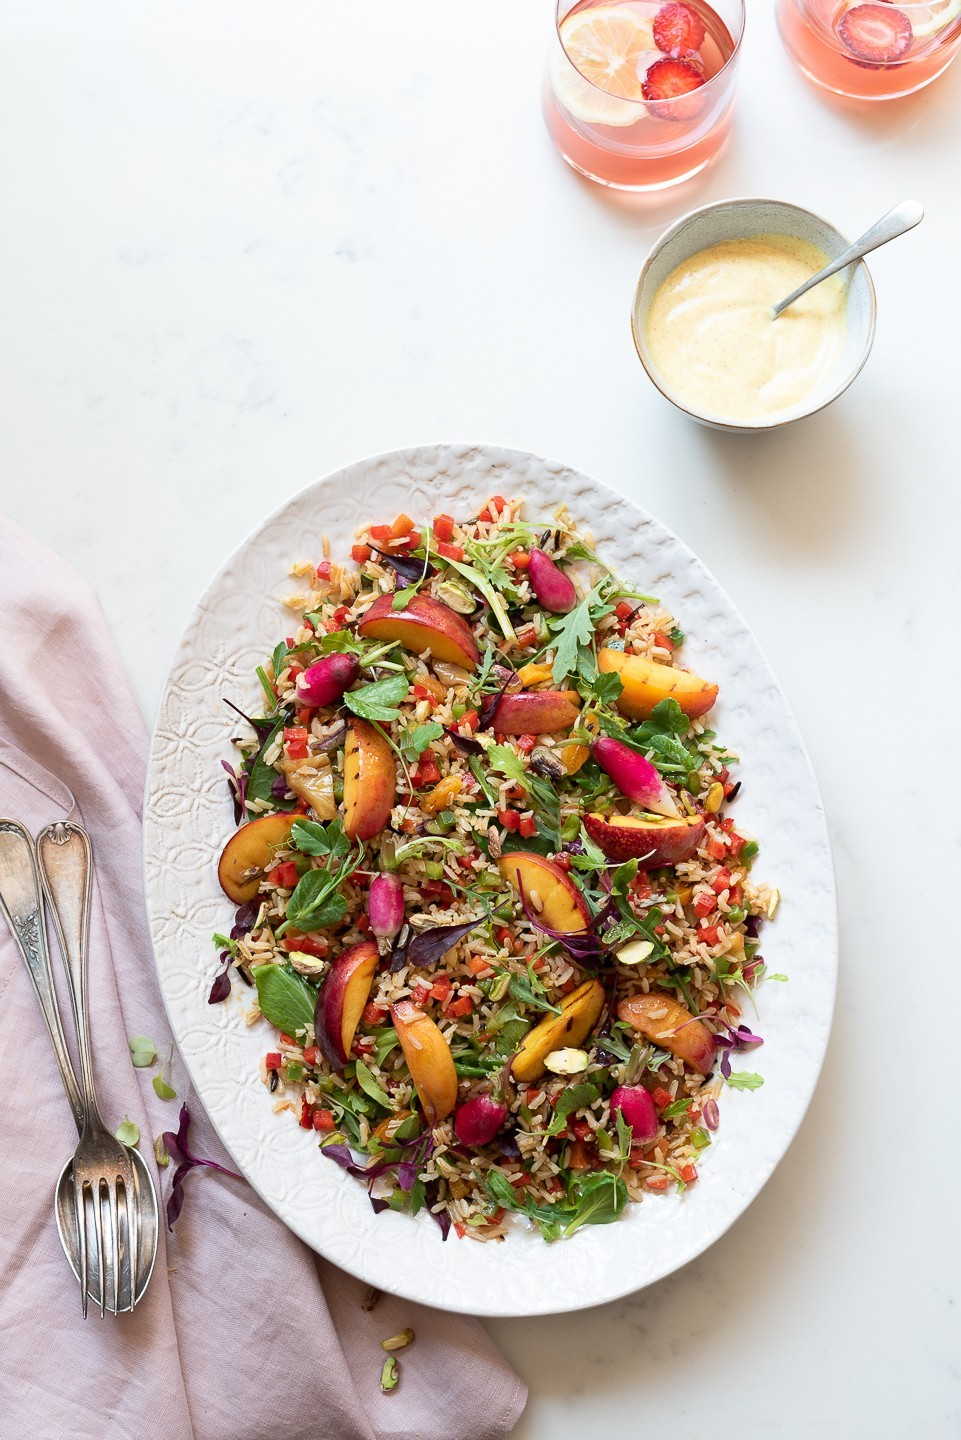 Wild rice salad with sweet peppers